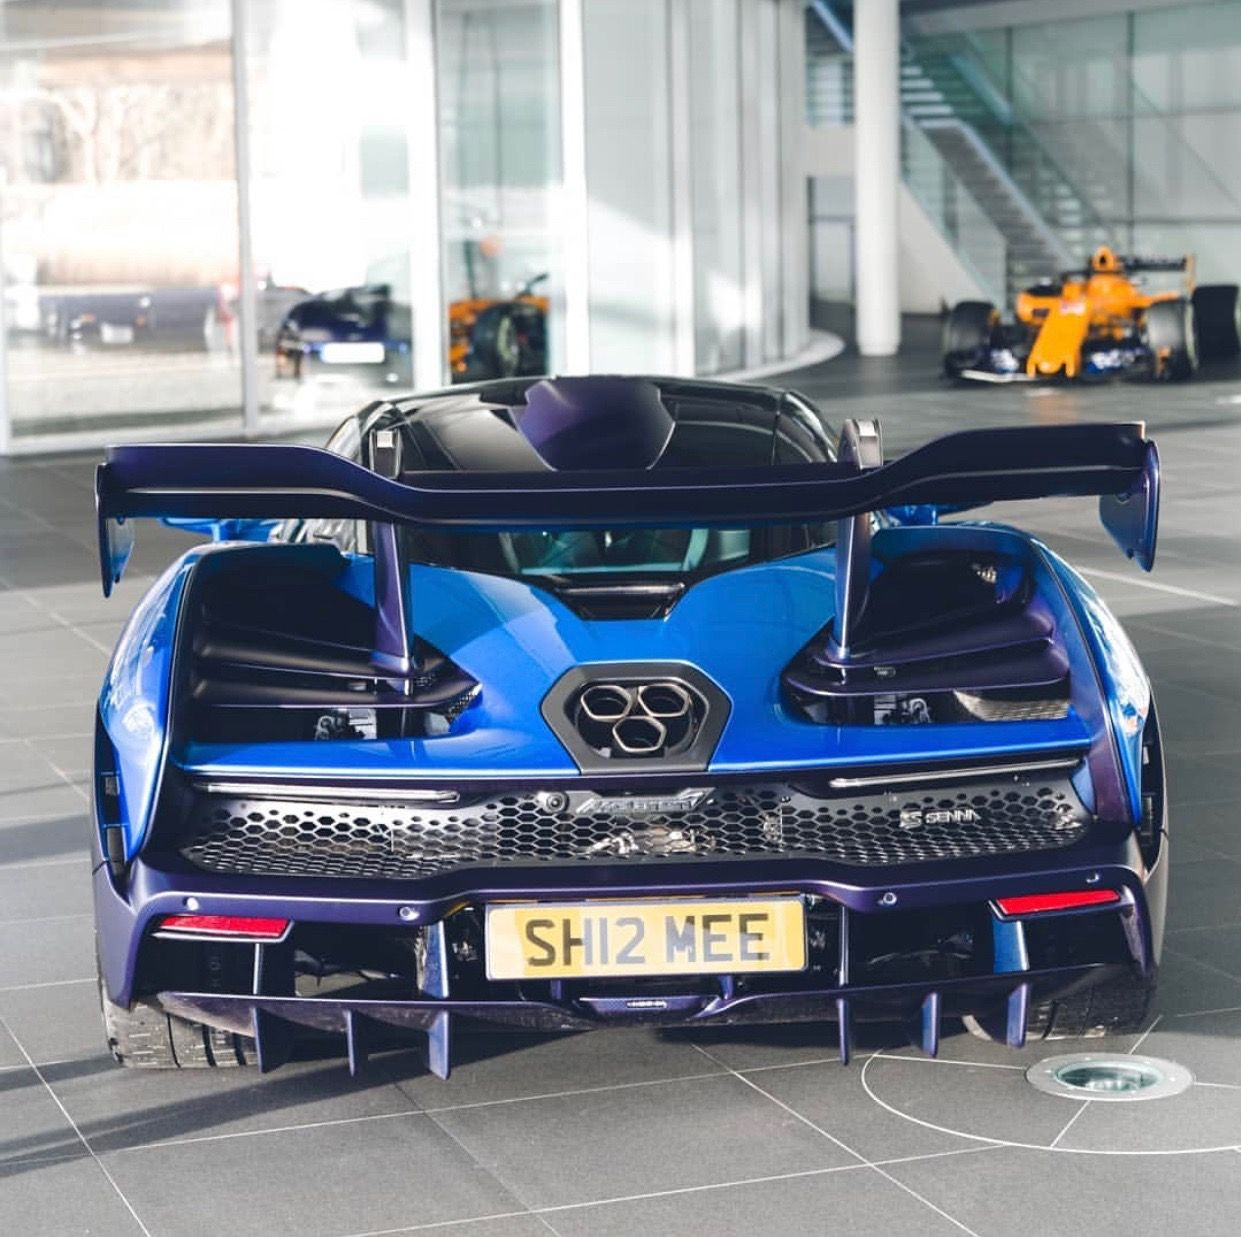 Mclaren Senna Chassis 281 Painted In Mso Cerulean Blue W Exposed Dark Blue Carbon Fiber Photo Taken By Shmee150 On I Dream Cars Sport Cars Amazing Cars